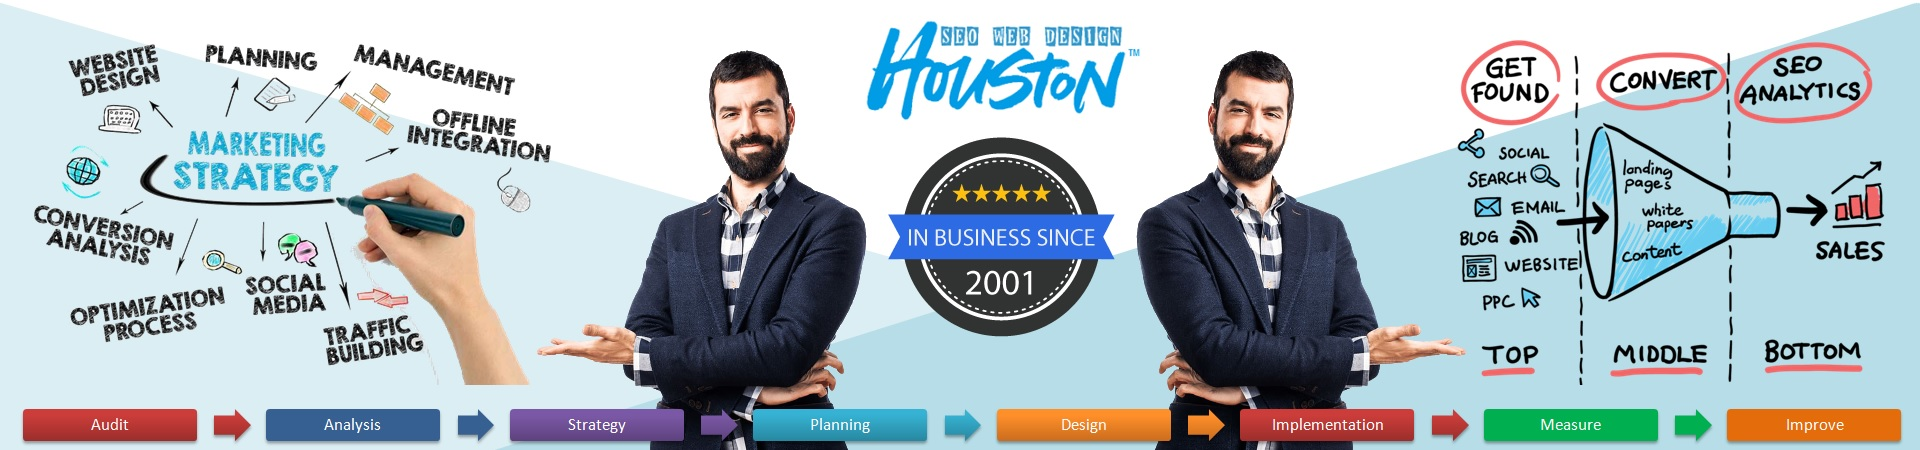 Houston Digital Marketing - Website Design Service and SEO Services